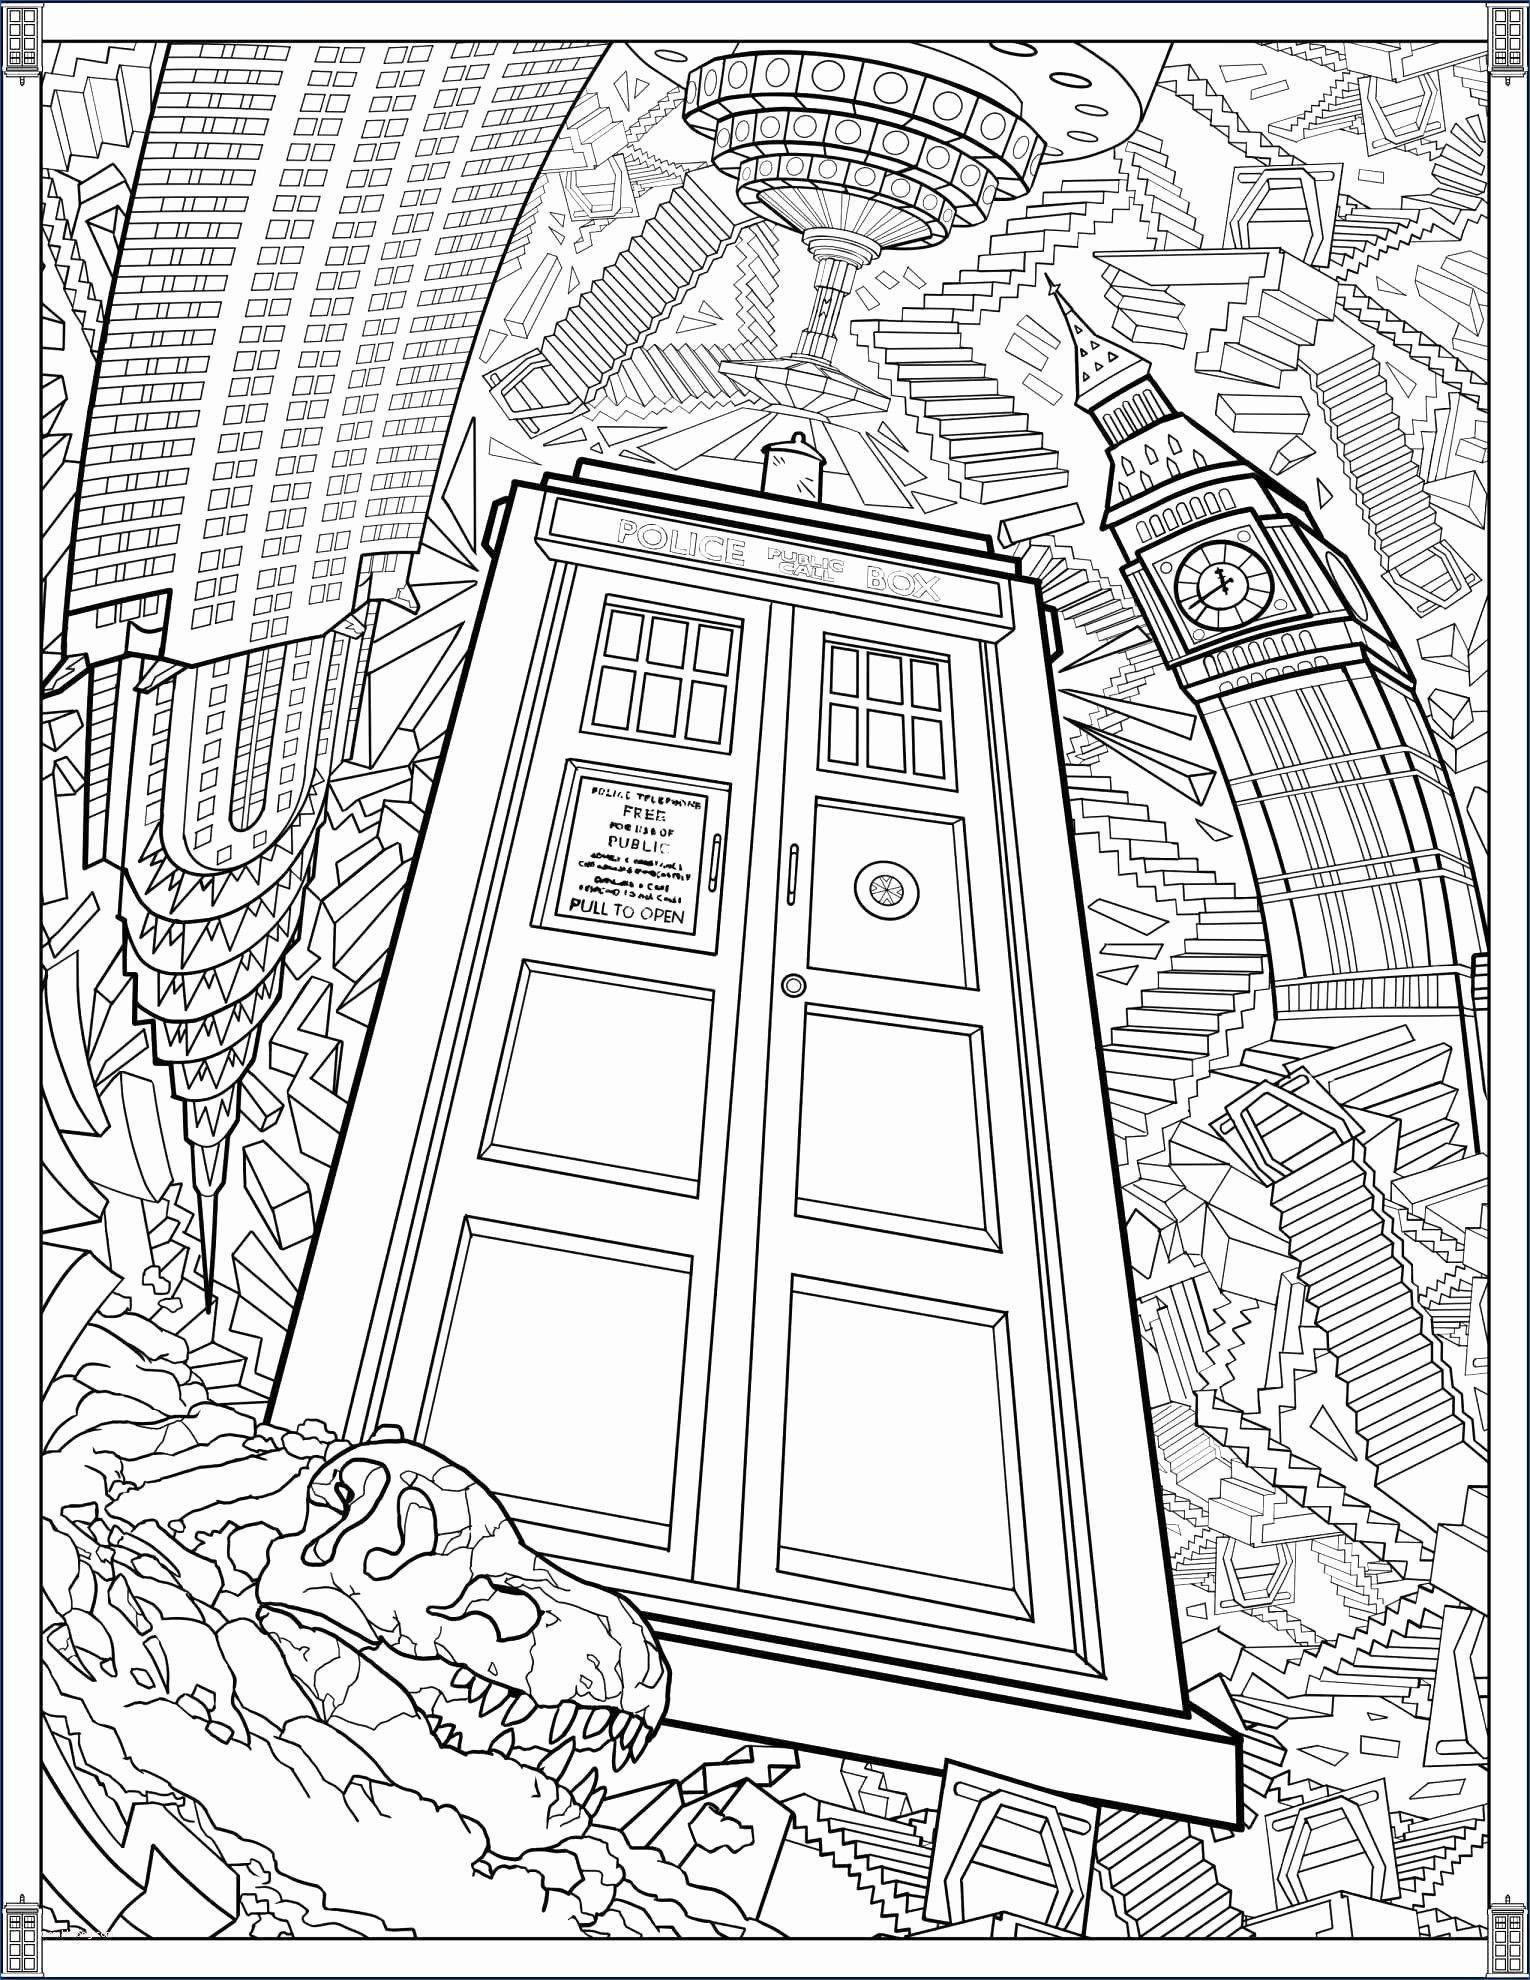 Coloring Pages for 3rd Graders Coloring Pages Free Printable Frozen Coloring Pages